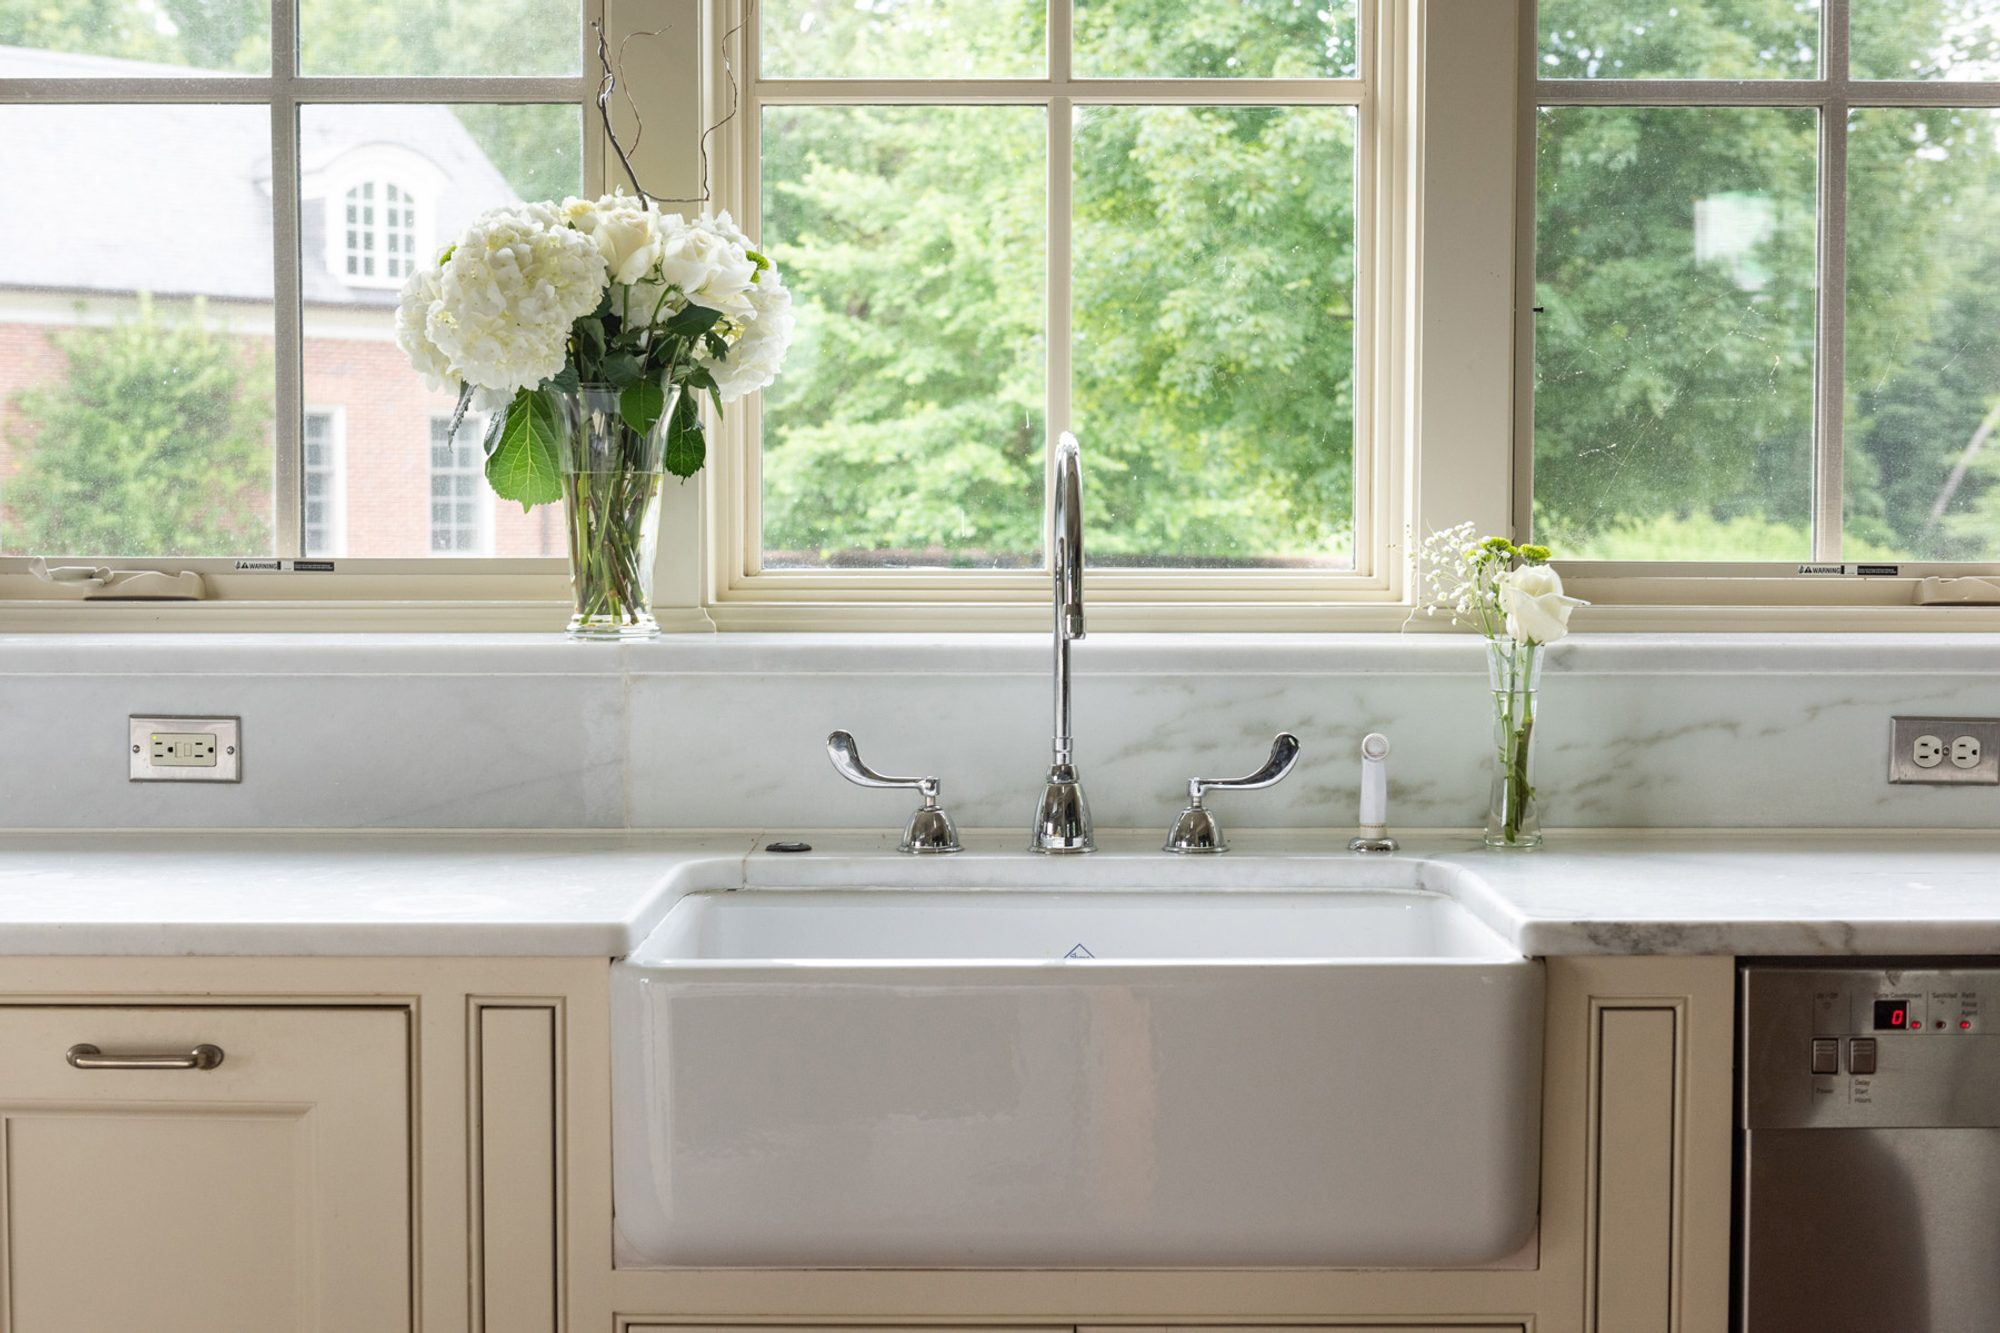 White cast iron farmhouse sink with cream cabinets and a marble backsplash. Chrome faucets and stainless steel appliances.